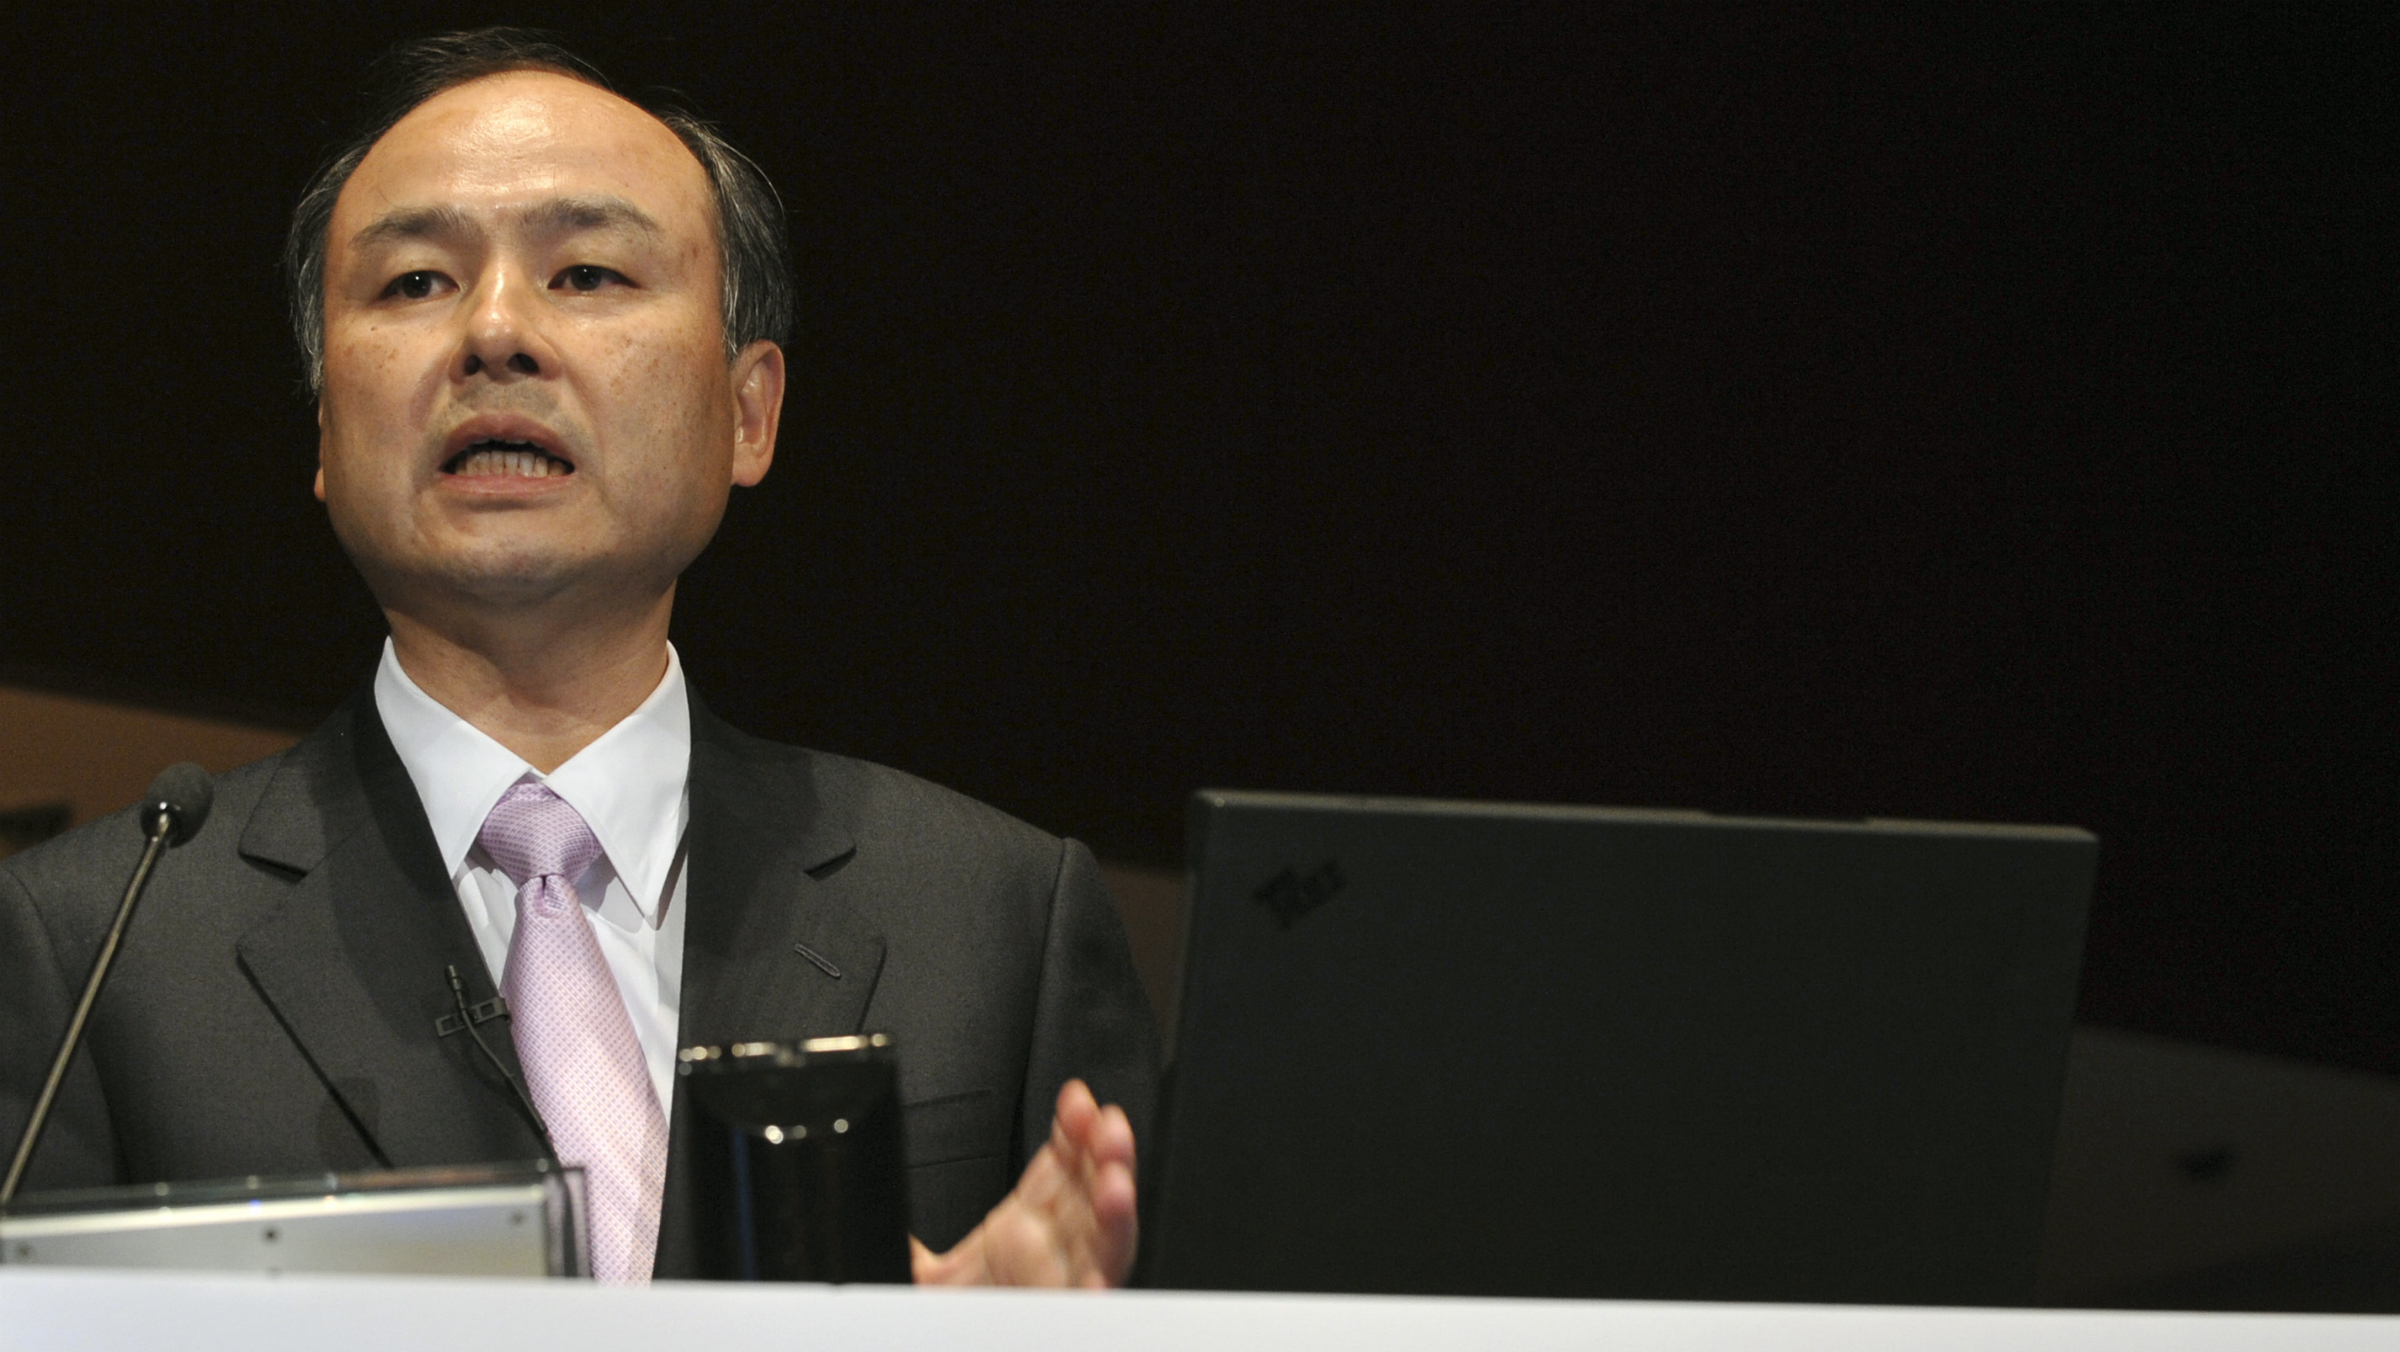 Japan's No. 3 mobile carrier Softbank Corp. Chief Executive Masayoshi Son speaks during a news conference in Tokyo Thursday, Feb. 5, 2009. Softbank said Thursday that its core business grew in the third quarter but that net profit fell 63 percent without the benefit of one-time gains last year from a new listing of a Hong Kong affiliate. Softbank posted a net profit of 17.1 billion yen ($191.1 million) for the October-December quarter, compared with 46.7 billion yen during the same period a year earlier. (AP Photo/Katsumi Kasahara